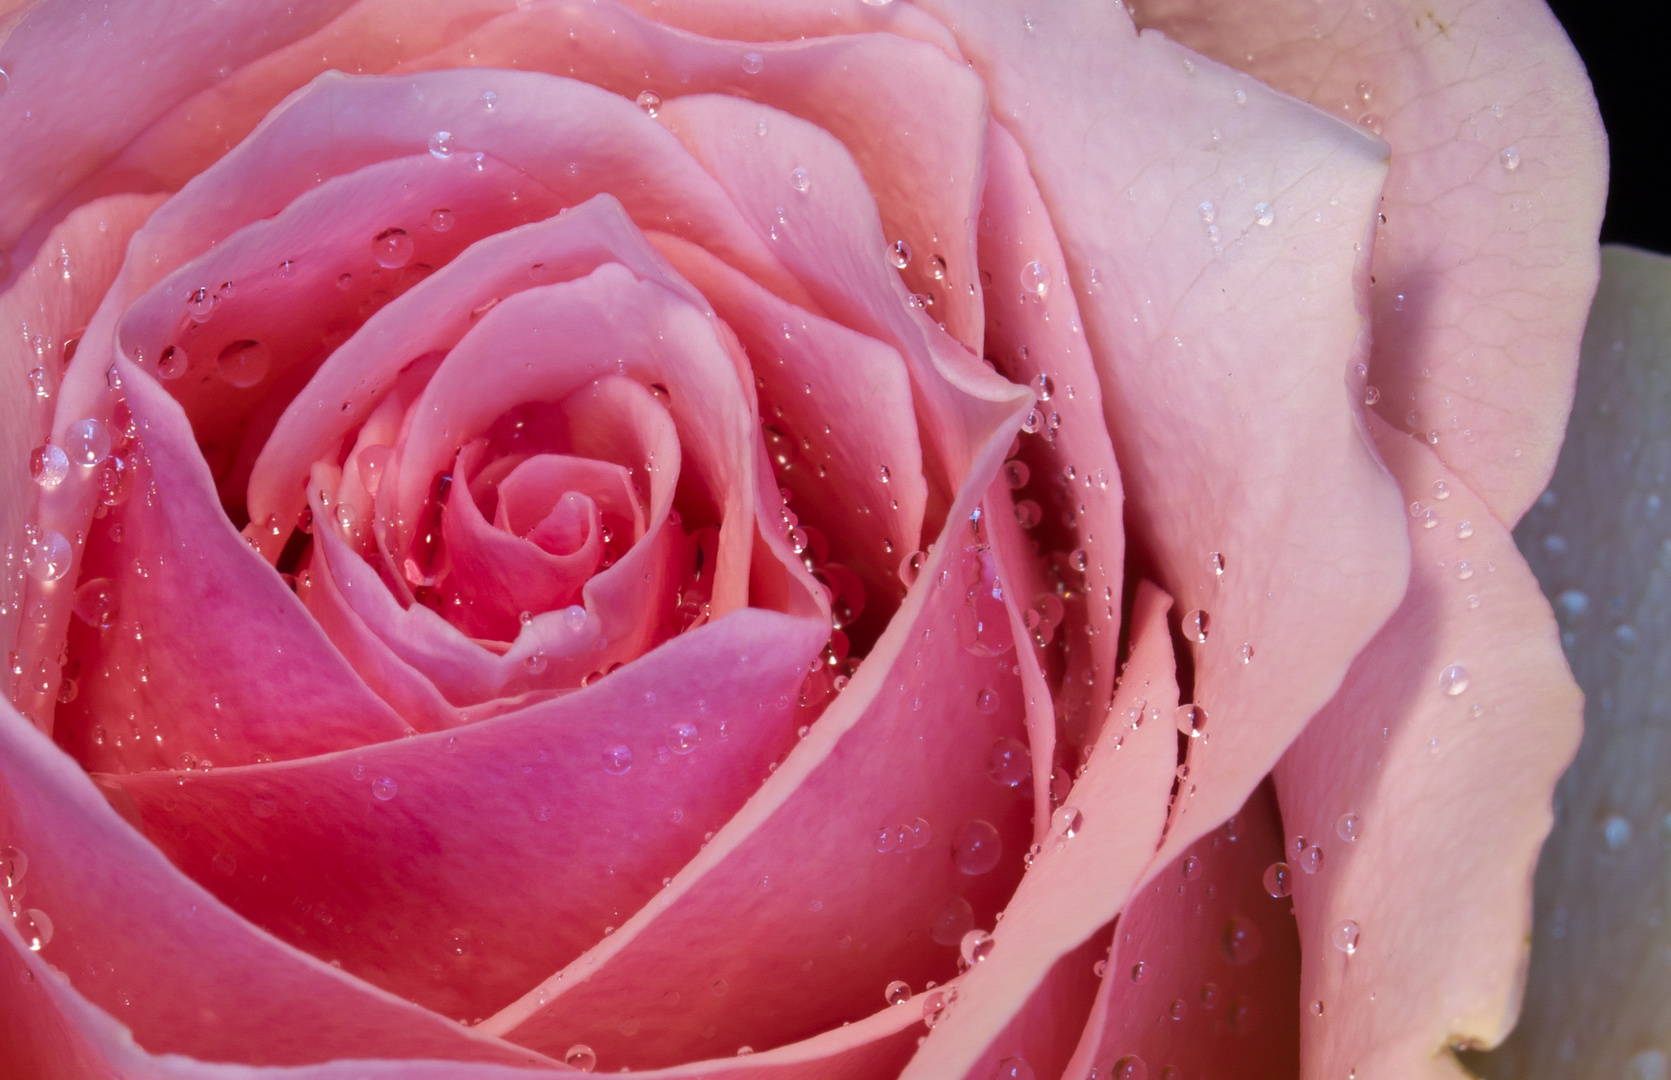 A rose is like a rose